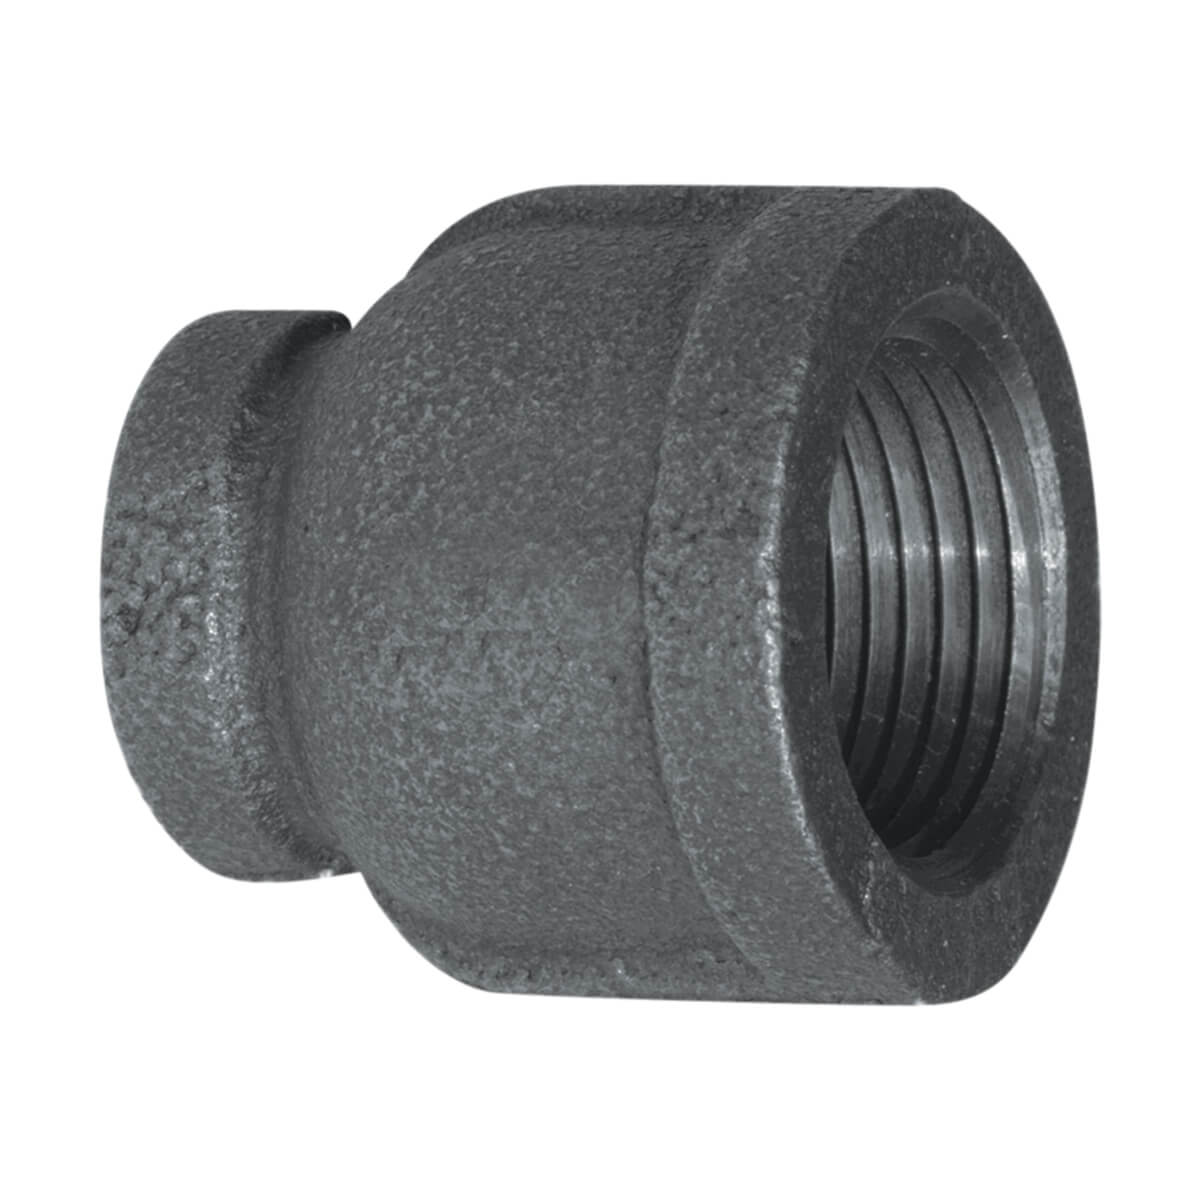 "Fitting Black Iron Reducer Coupling 3/4"" x 1/2"""